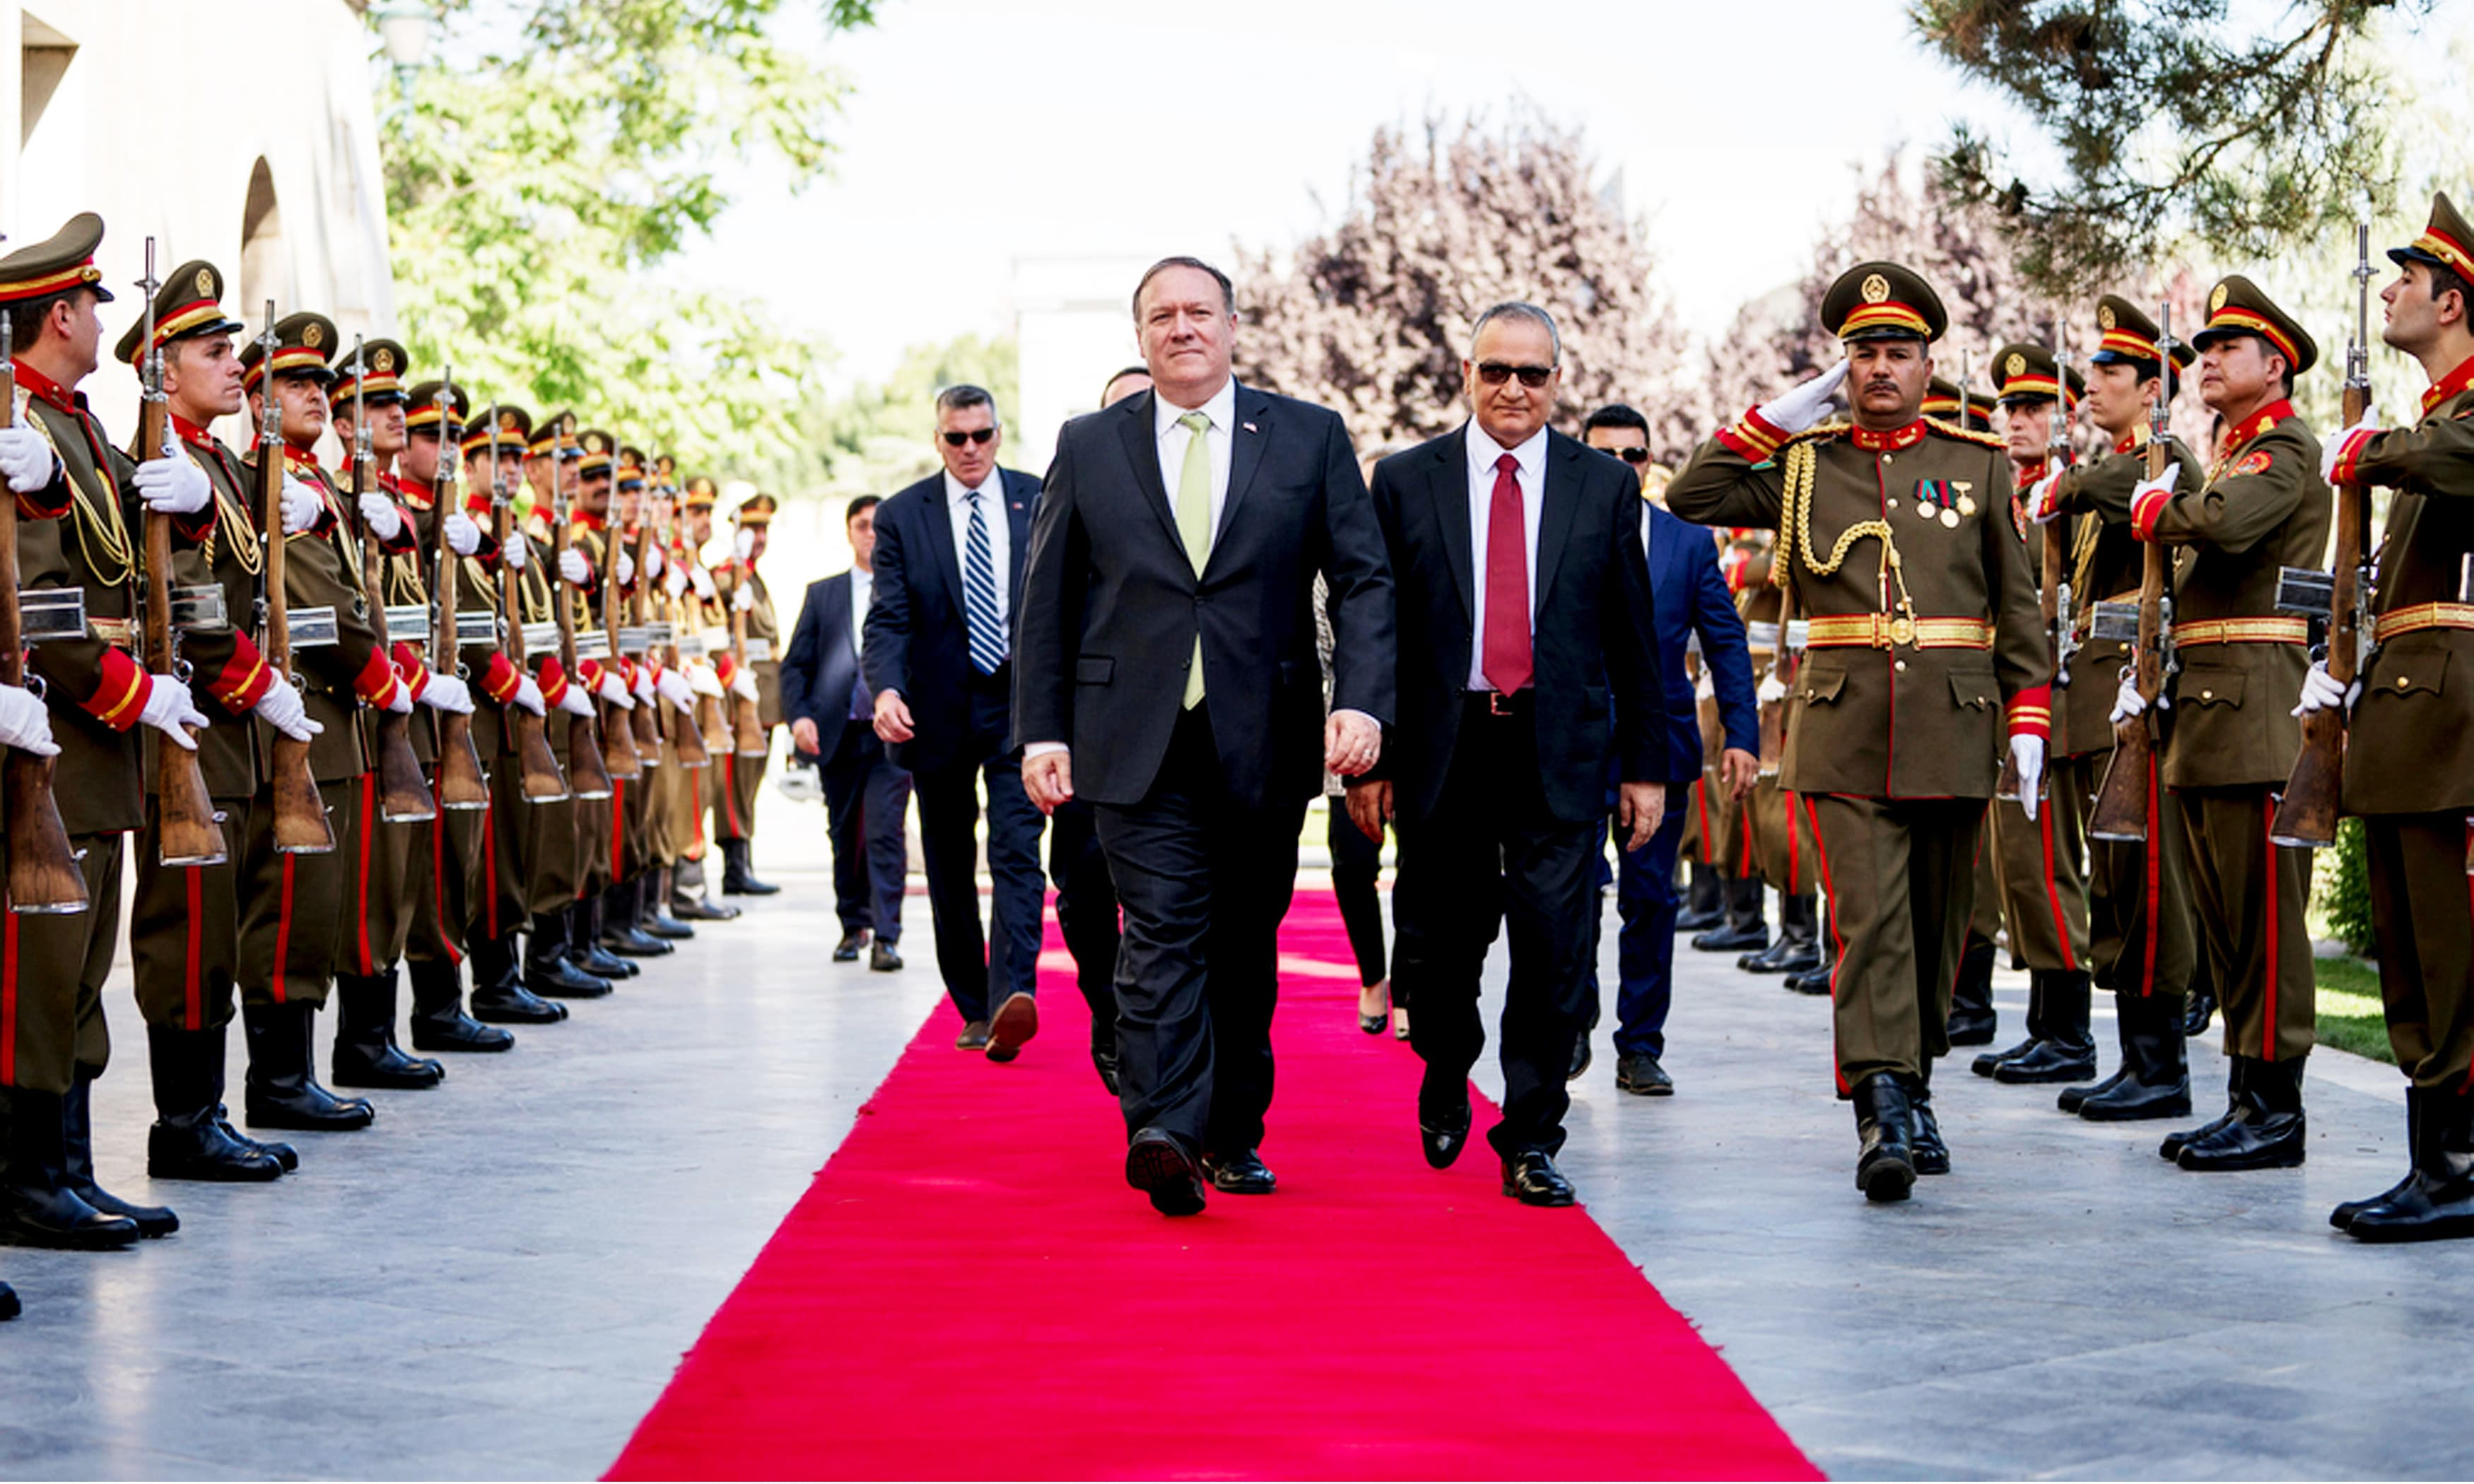 US Secretary of State Mike Pompeo is greeted by Afghan Chief of Staff Abdul Salam Rahimi, as he arrives at Gul Khanna in the Presidential Palace in Kabul. —AP